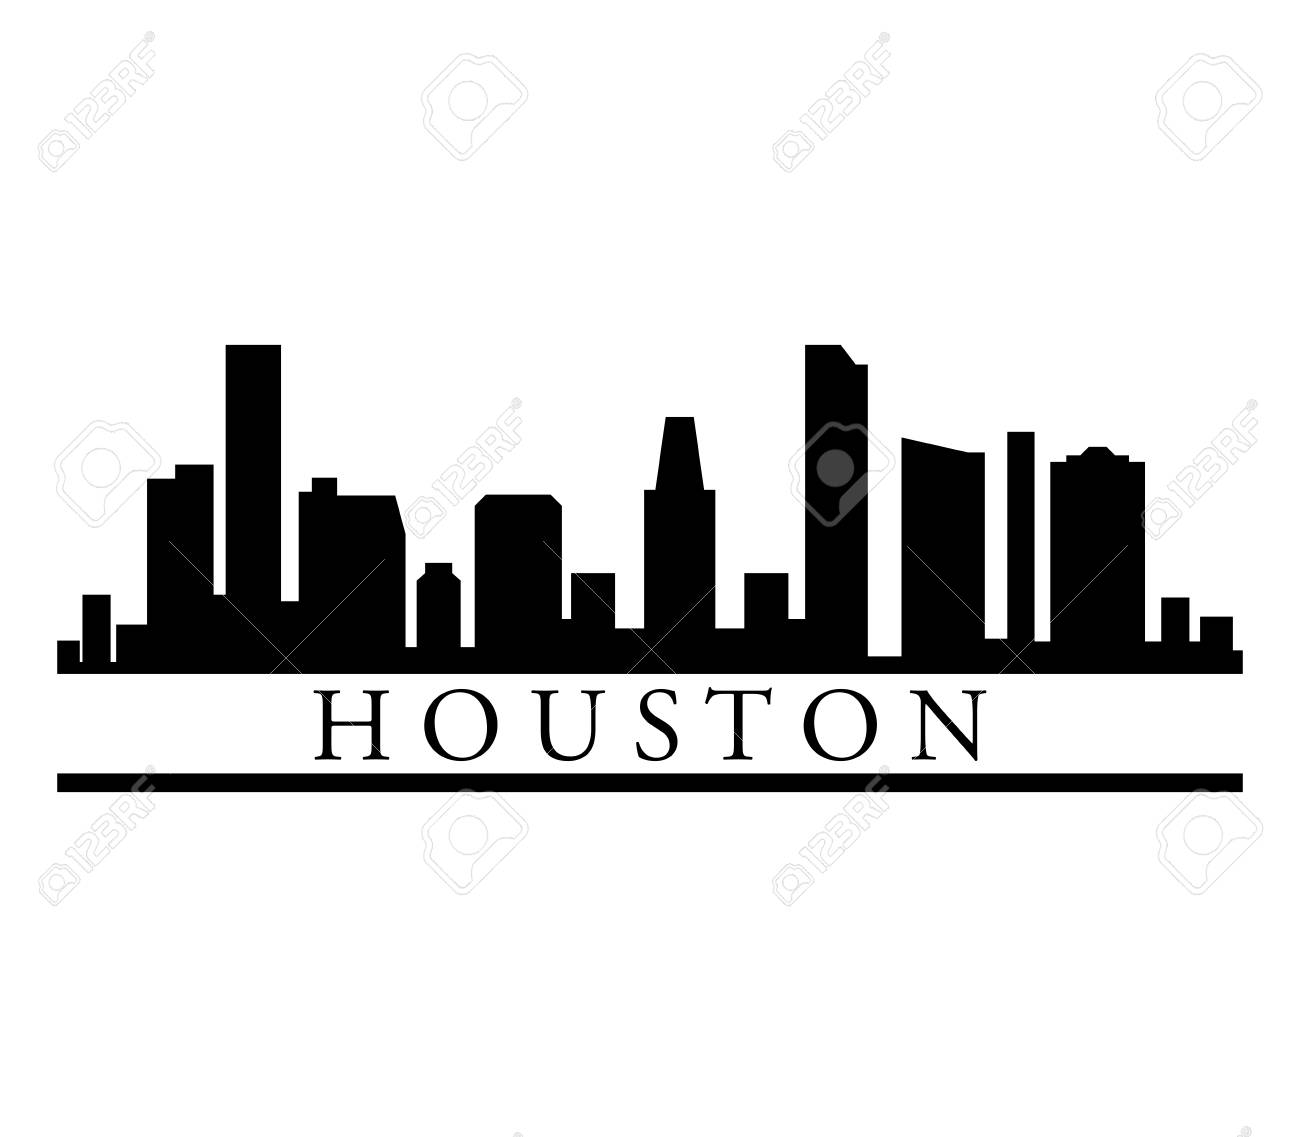 Houston skyline.